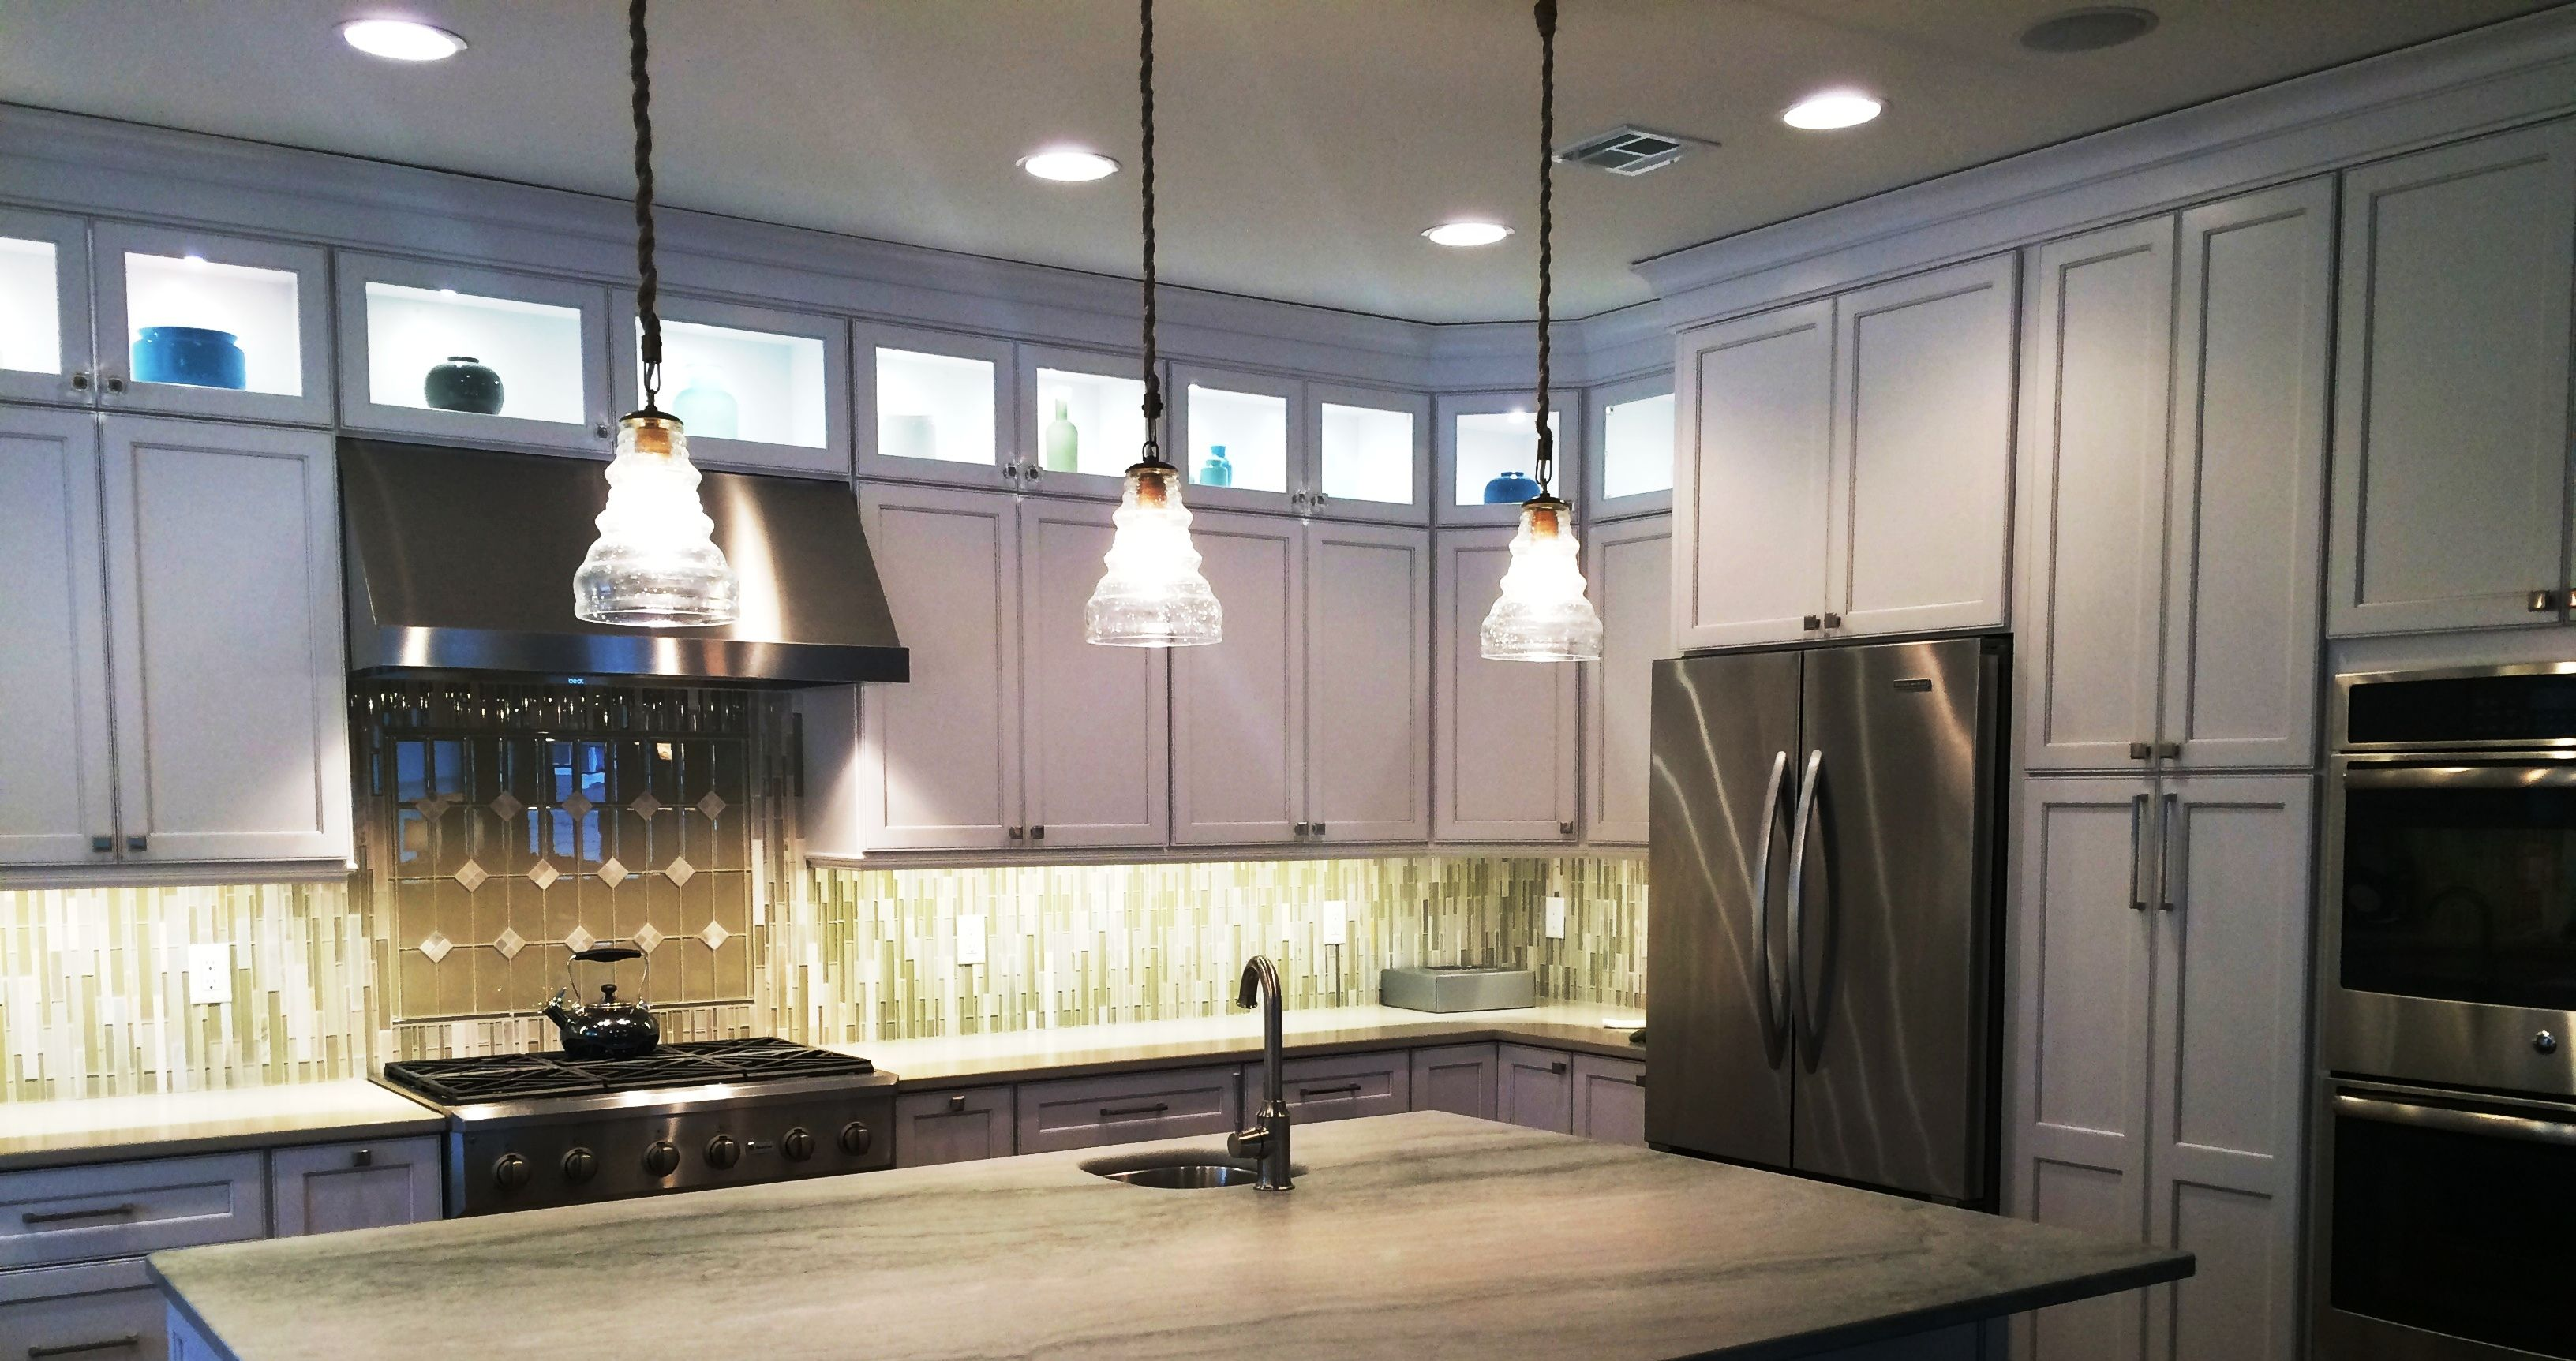 apron cabinets beach blue glass stainless hamptons this yet shaped island l pin kitchens traditional countertops tiles subway steel kitchen is front marble sink white clean the backsplash quintessential in